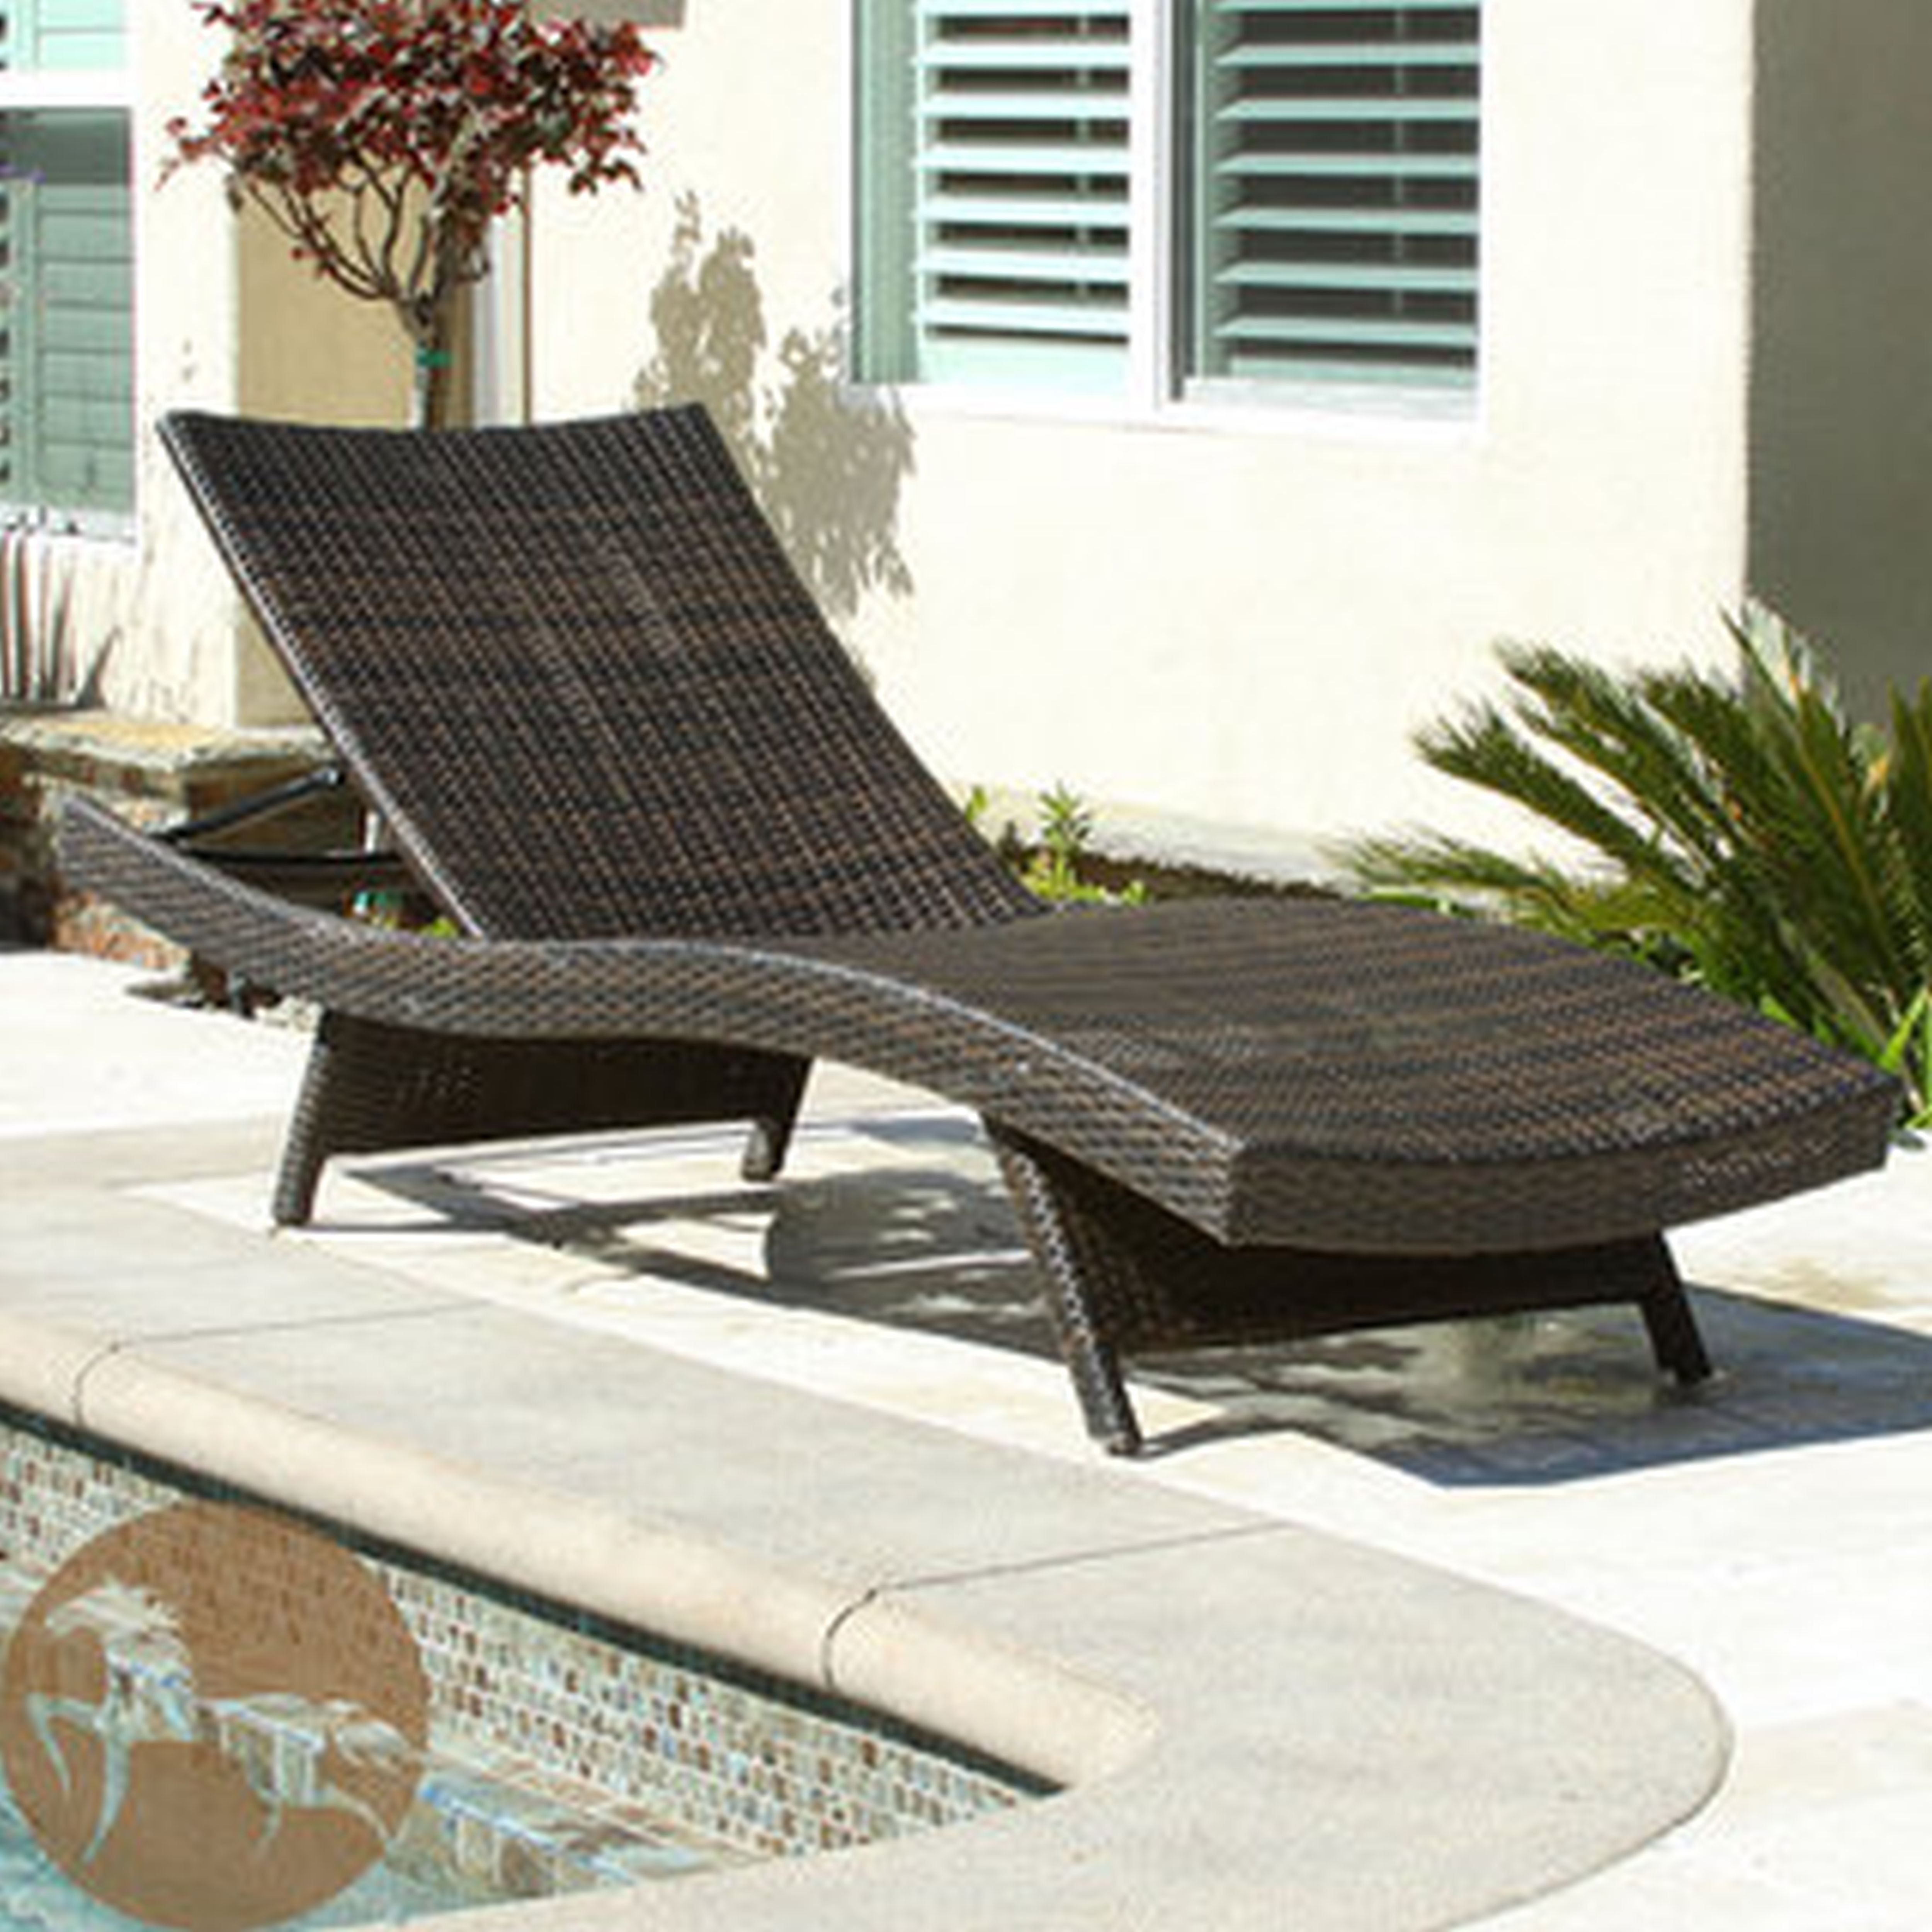 Outdoor : Patio Chaise Lounge Chairs Pool Lounge Chairs Chaise Intended For Well Known Wicker Chaise Lounge Chairs For Outdoor (View 12 of 15)